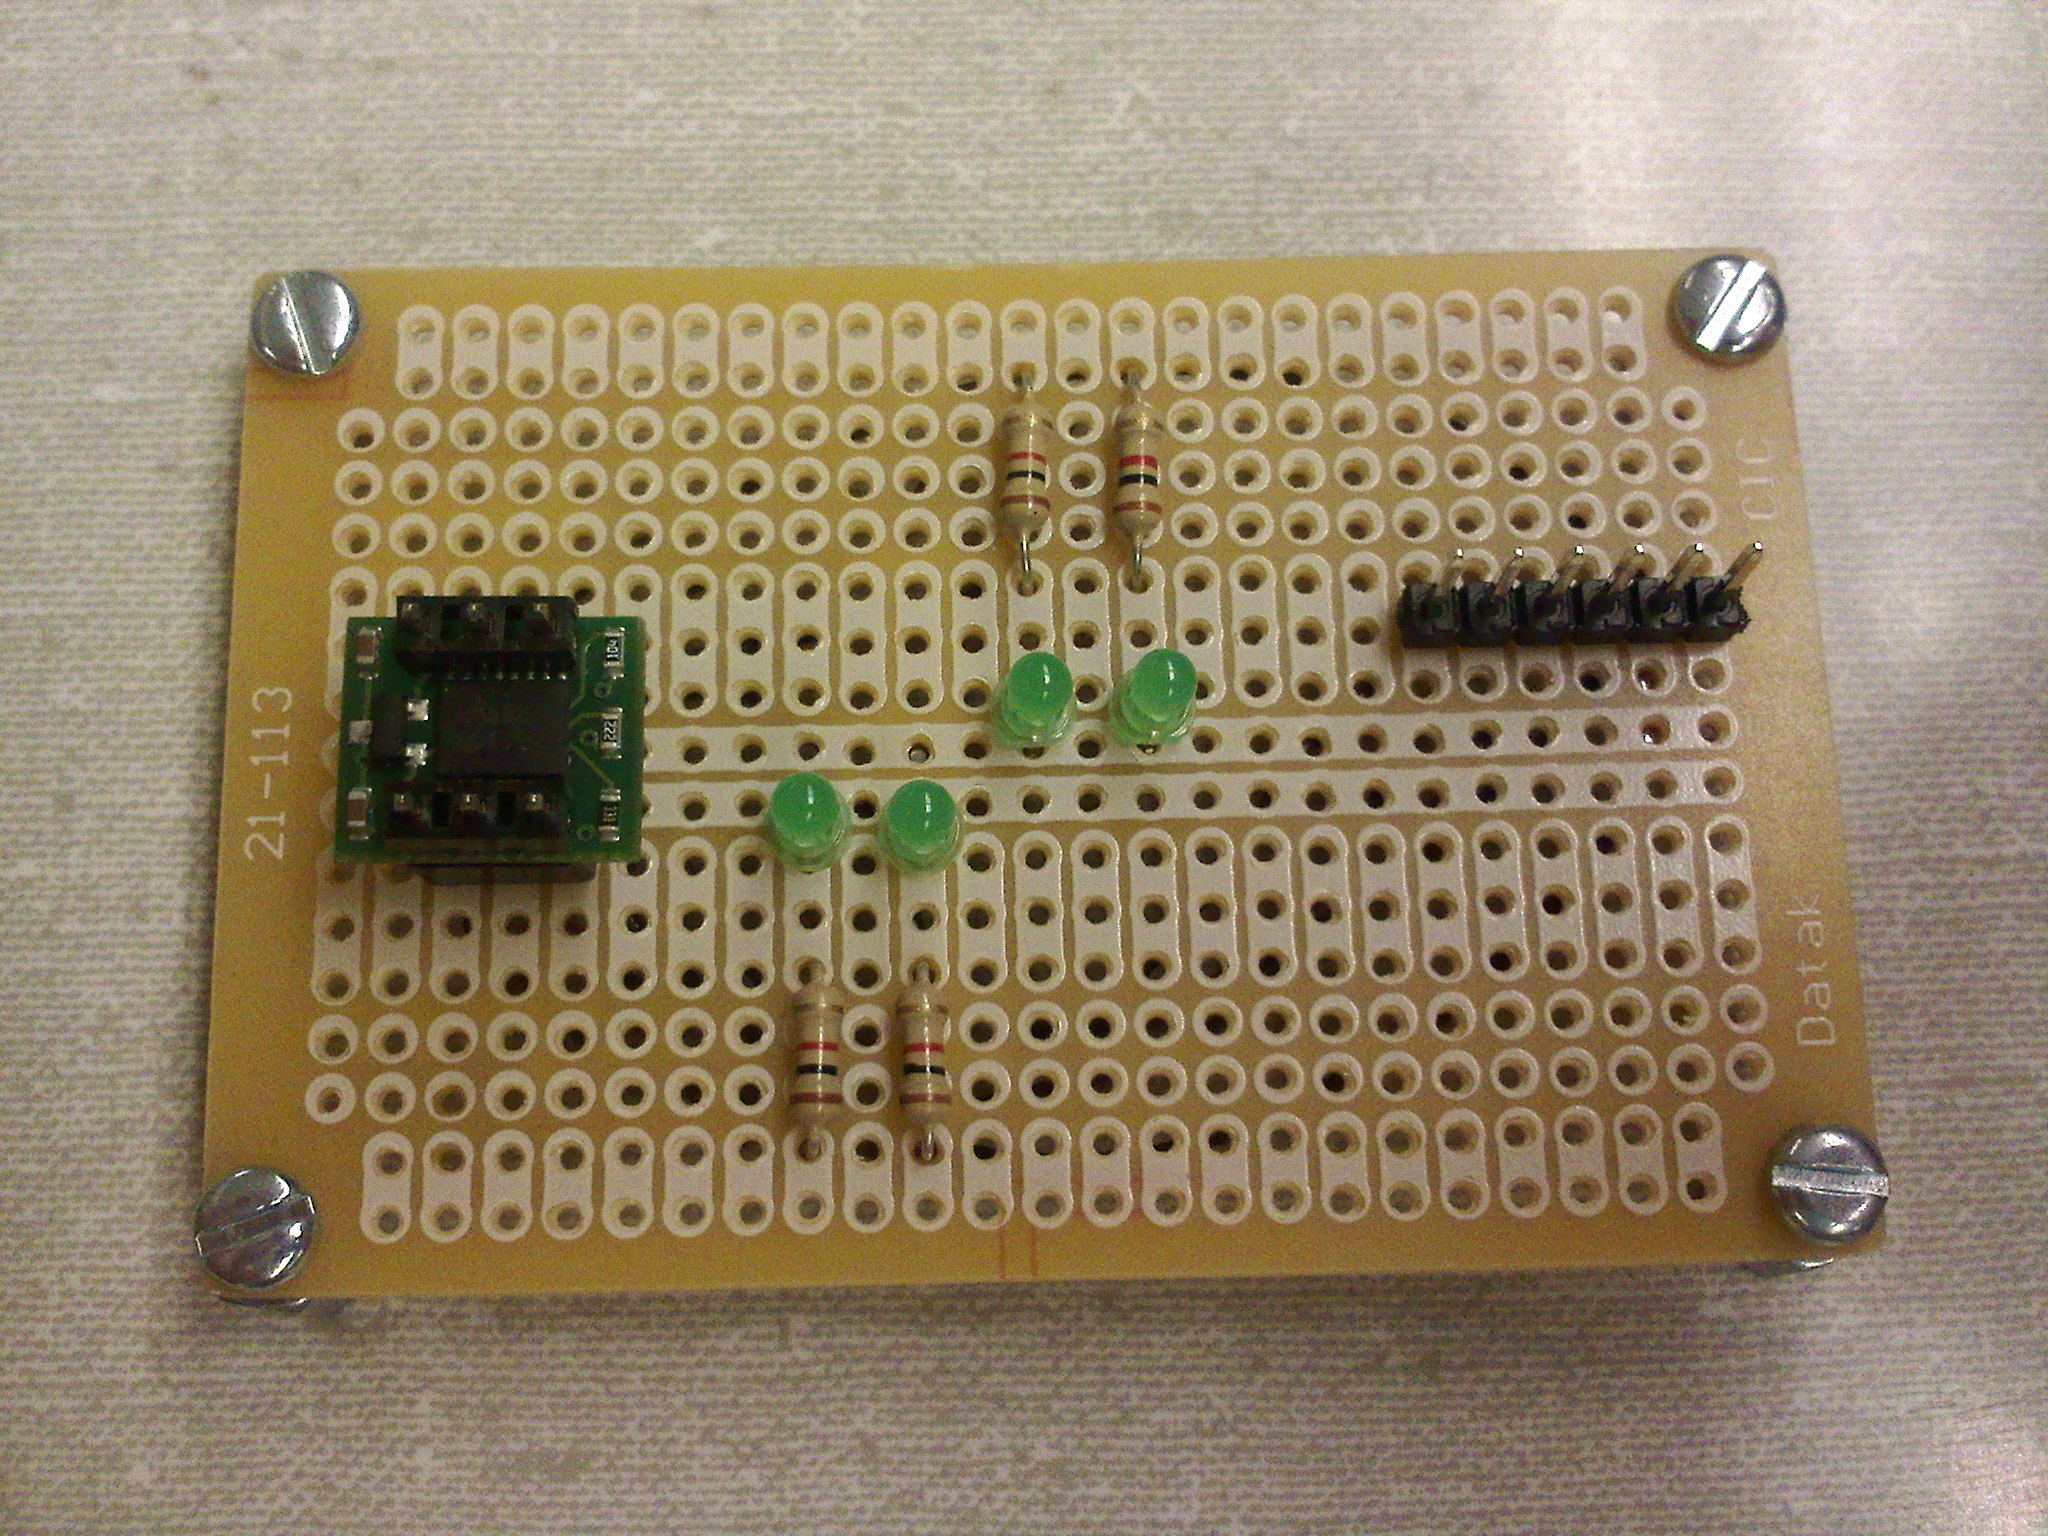 Anthony Myerss Lab Notebook The Breadboard Circuit Of Above Is Shown Below Interfacing With Microcontroller Will Be Tested At A Later Date Detailed Pictures Boards Are